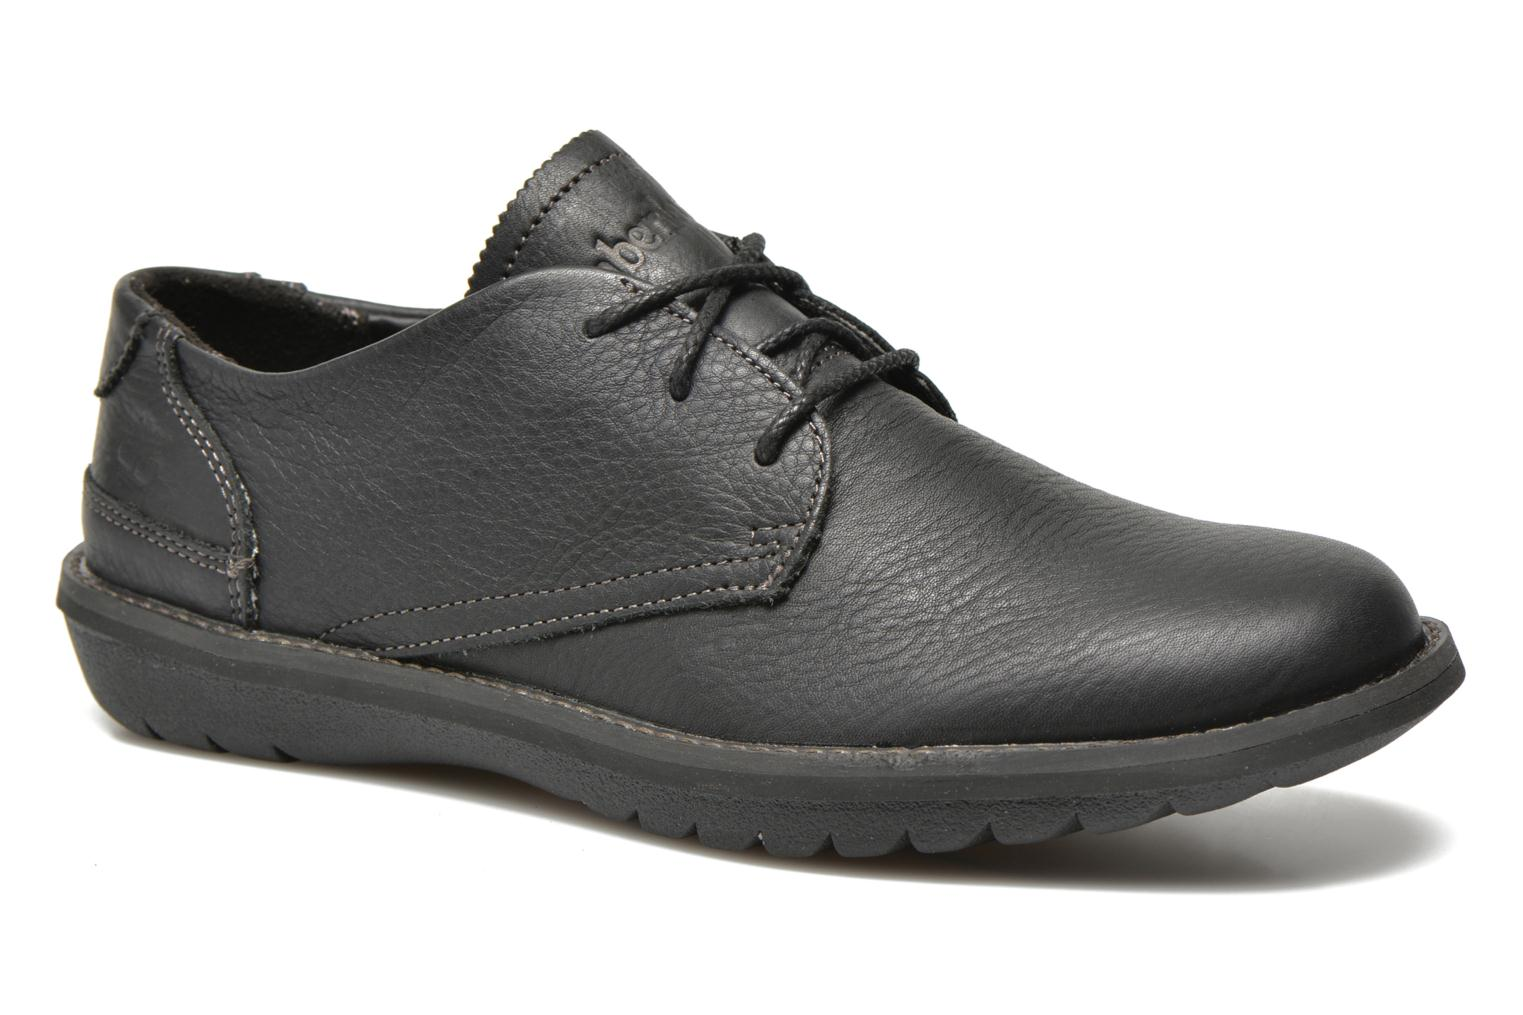 Earthkeepers Travel Oxford Black Printed FG